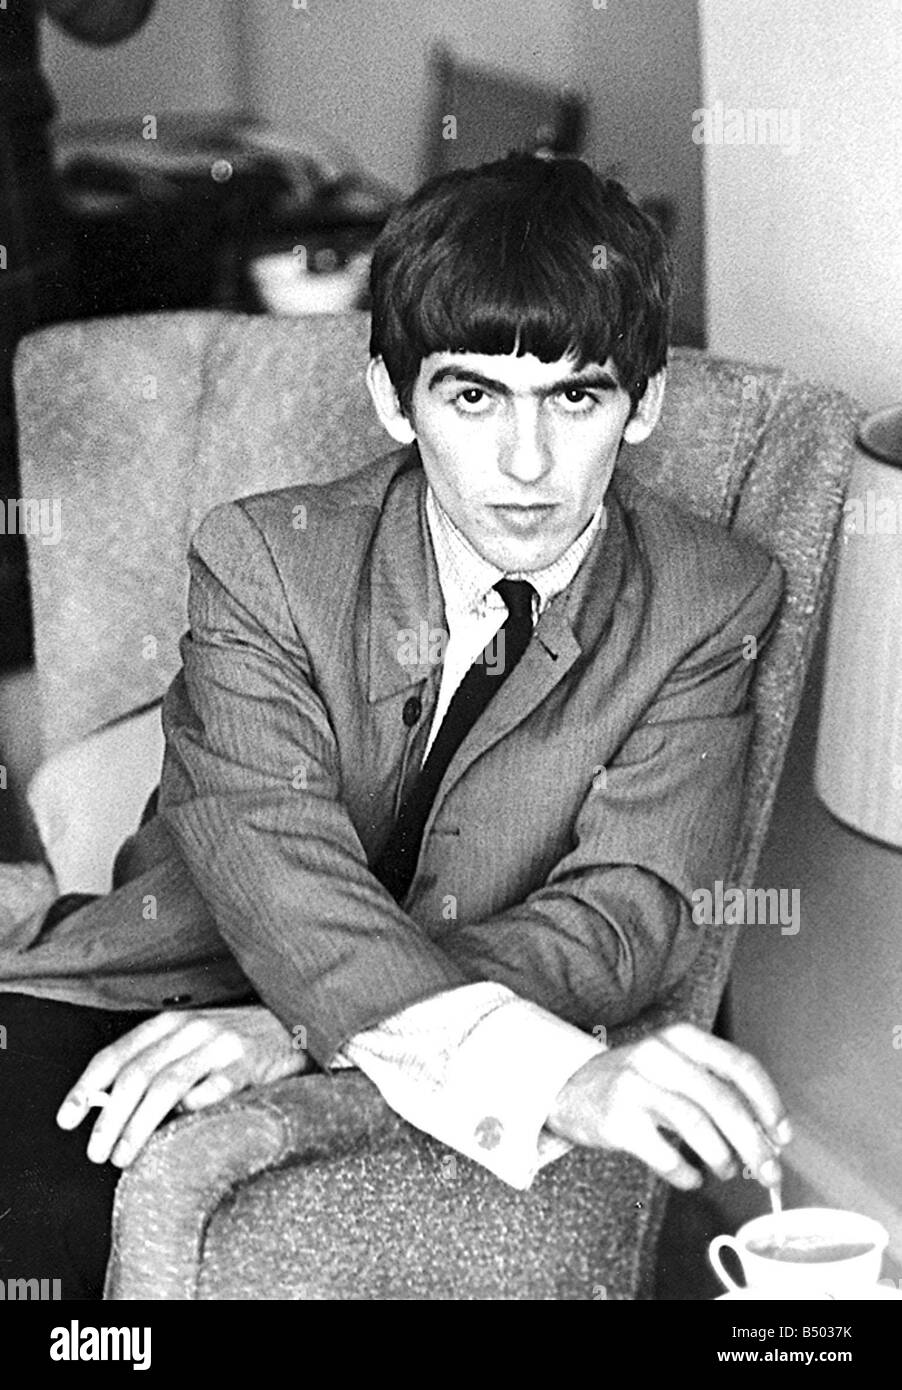 Beatles files George Harrison at home of Mirror reporter Donald Zec 09 09 63 - Stock Image